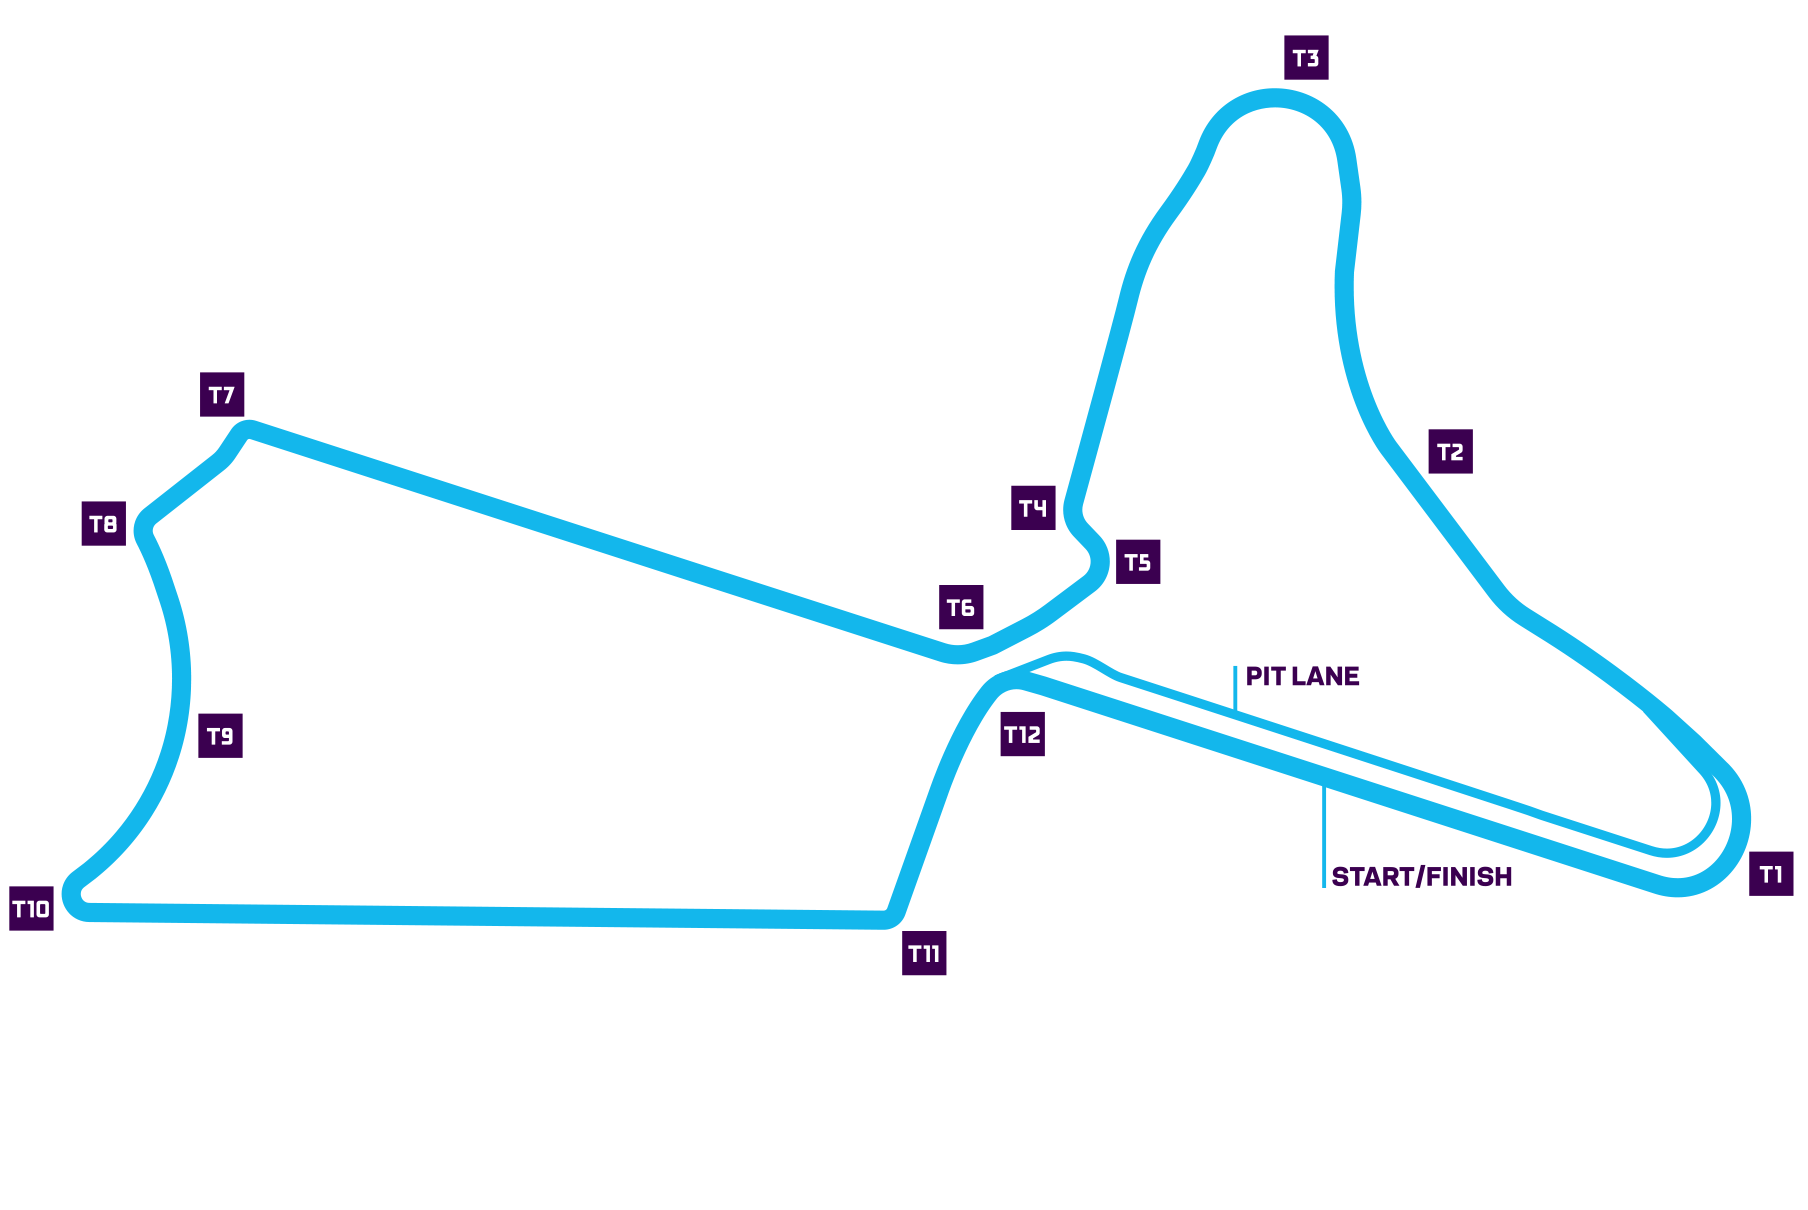 Marrakesh E-Prix track map